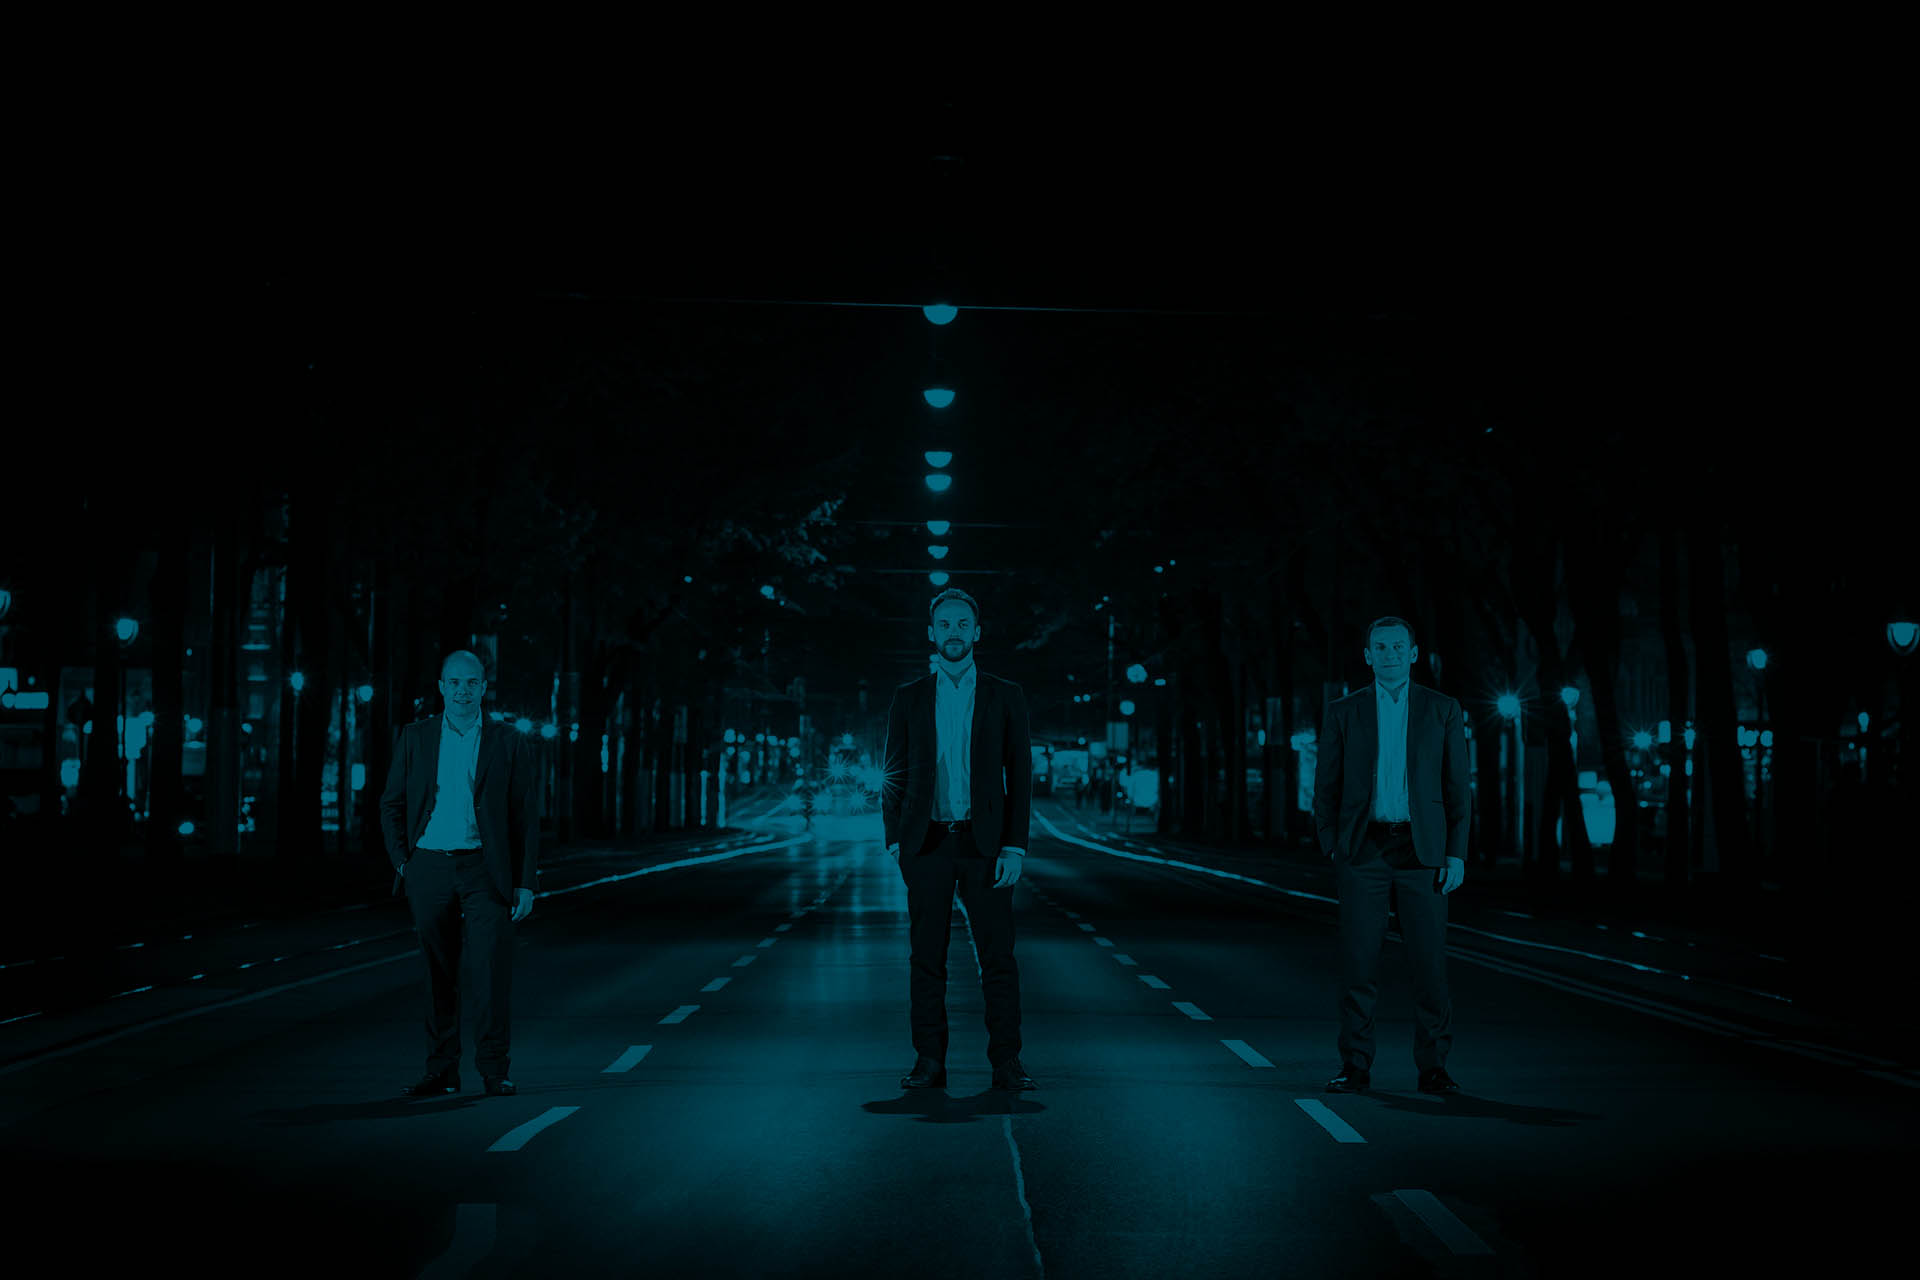 The three managing partner of accilium are standing on a three lane road looking towards the camera. Behind them there are cars approaching them. Its dark in the evening.